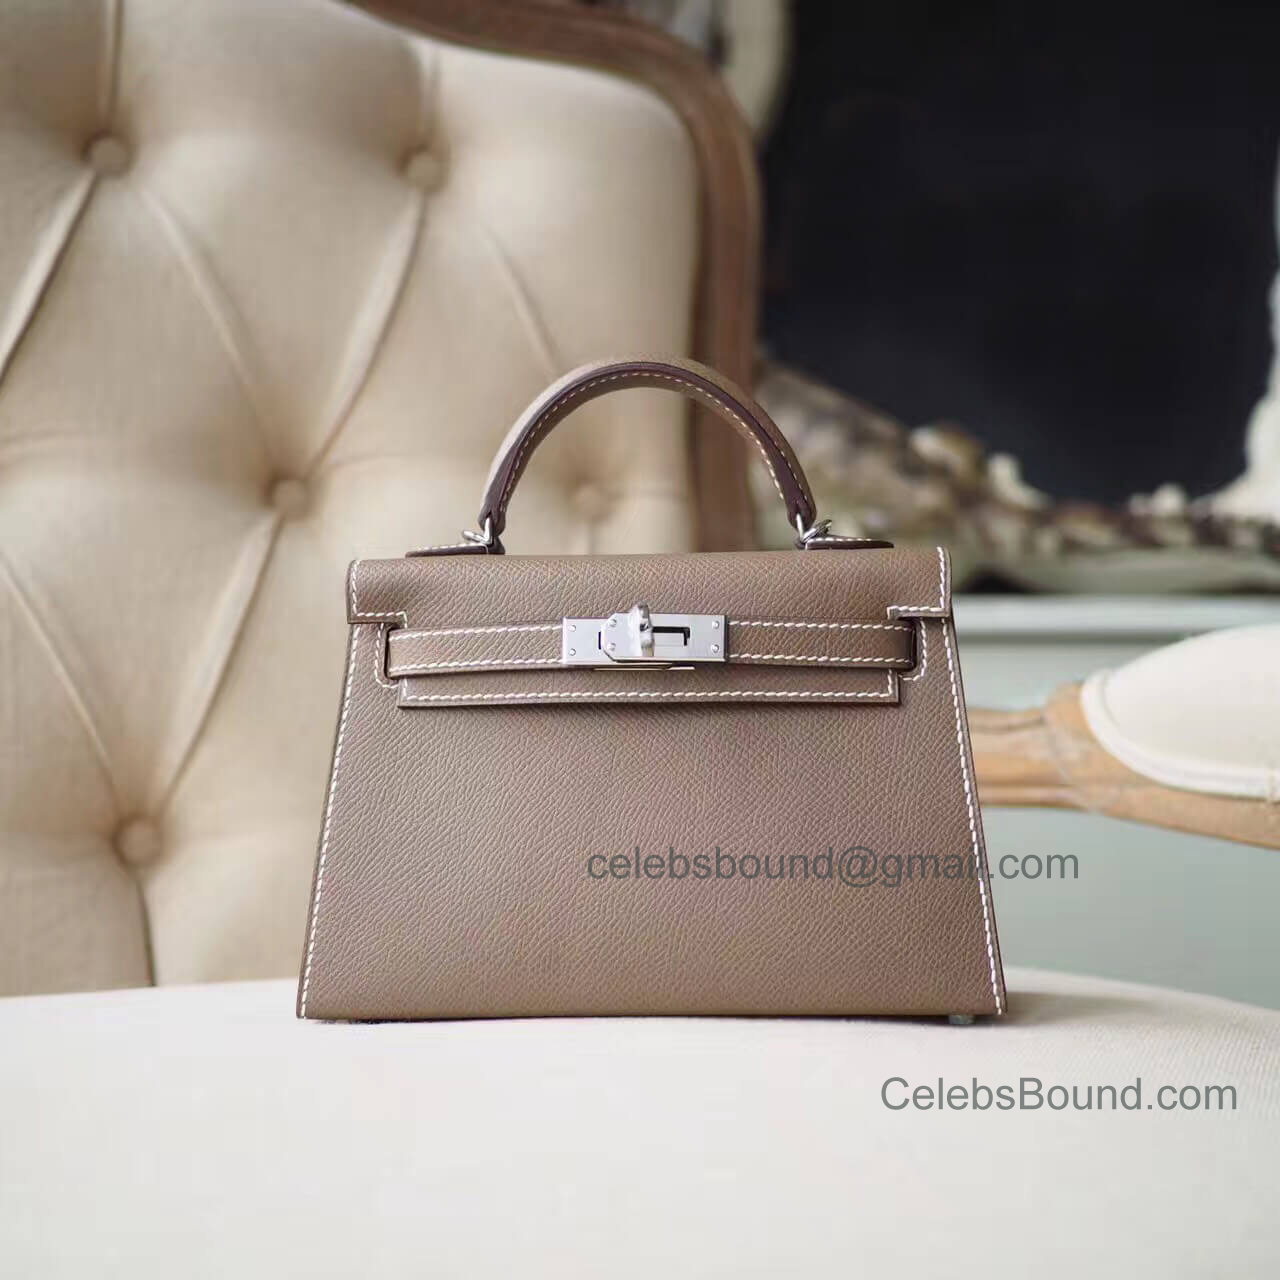 Hermes Mini Kelly 20 II Bag in ck18 Etoupe Epsom PHW